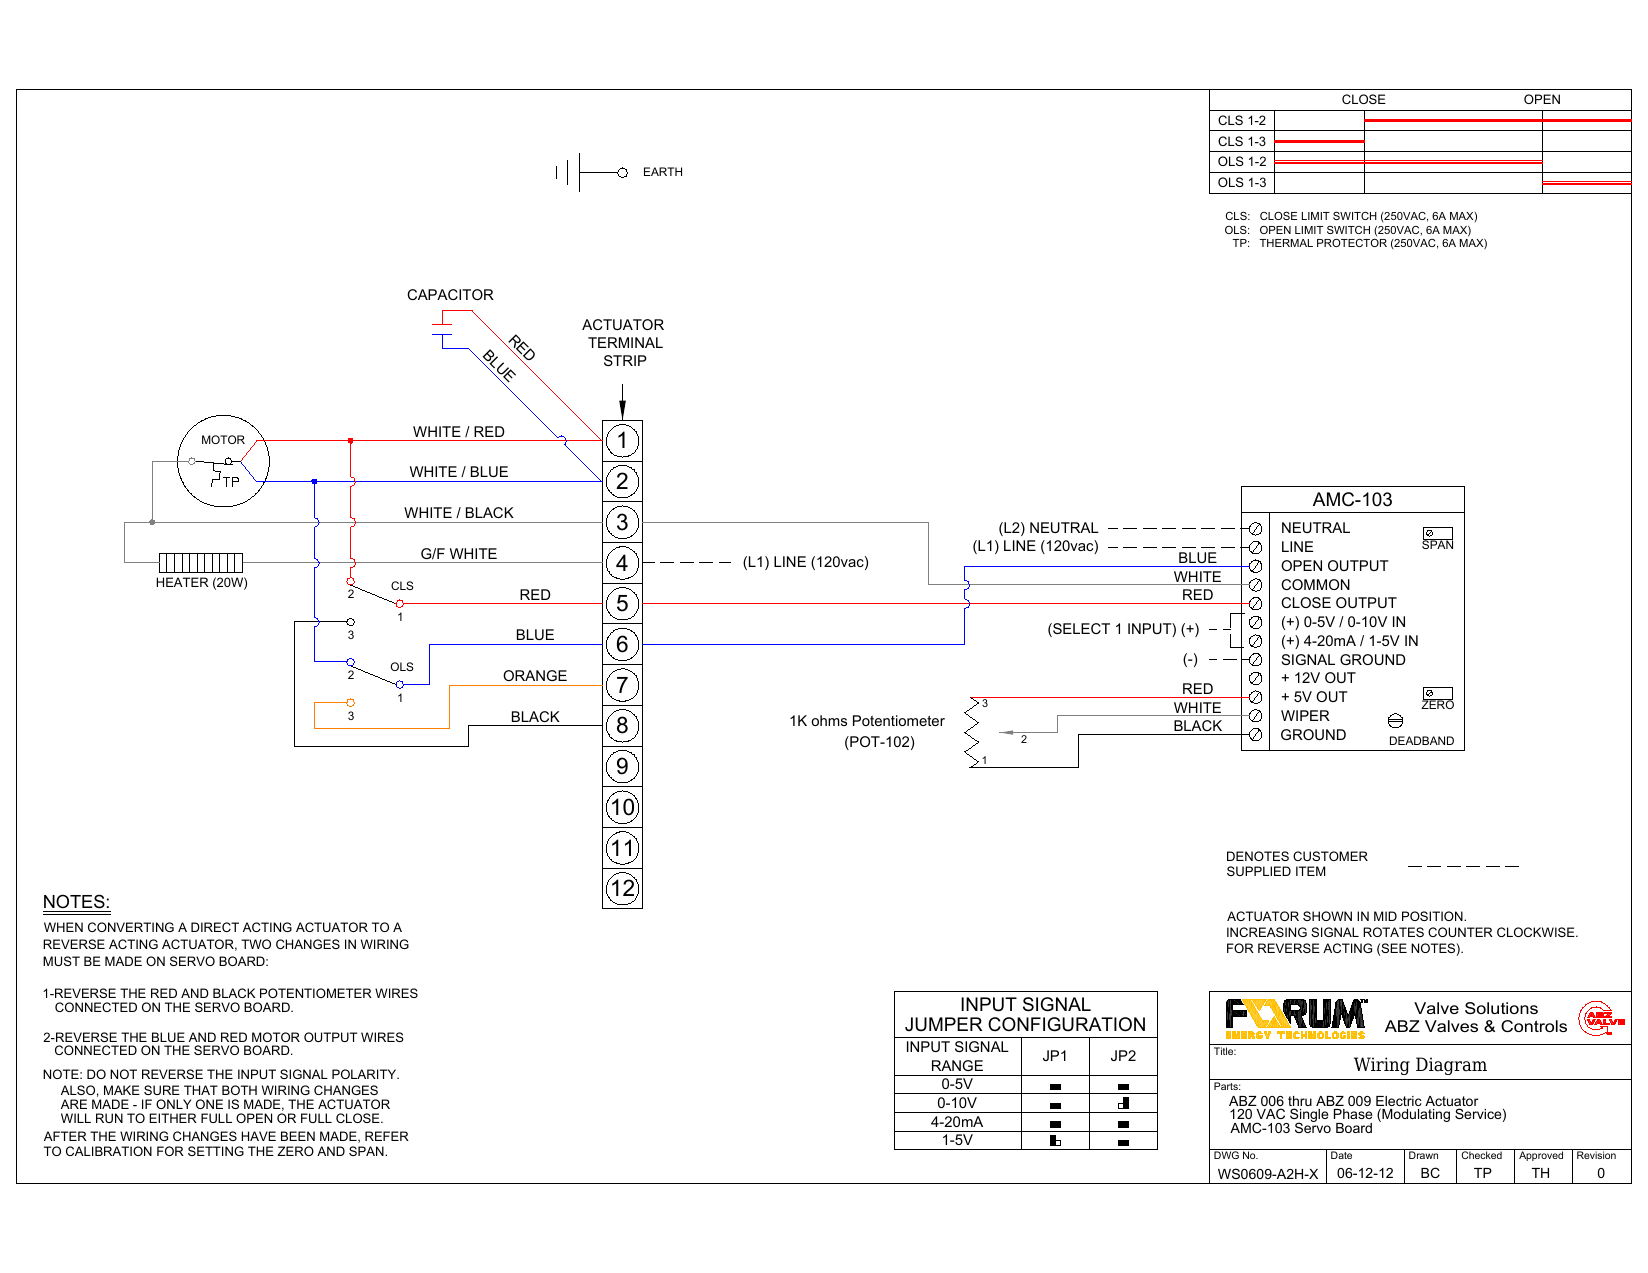 hight resolution of abz electric actuator wiring diagram actuator motor wiring hf21kj005 actuator motor wiring schematic honeywell actuator wiring diagrams